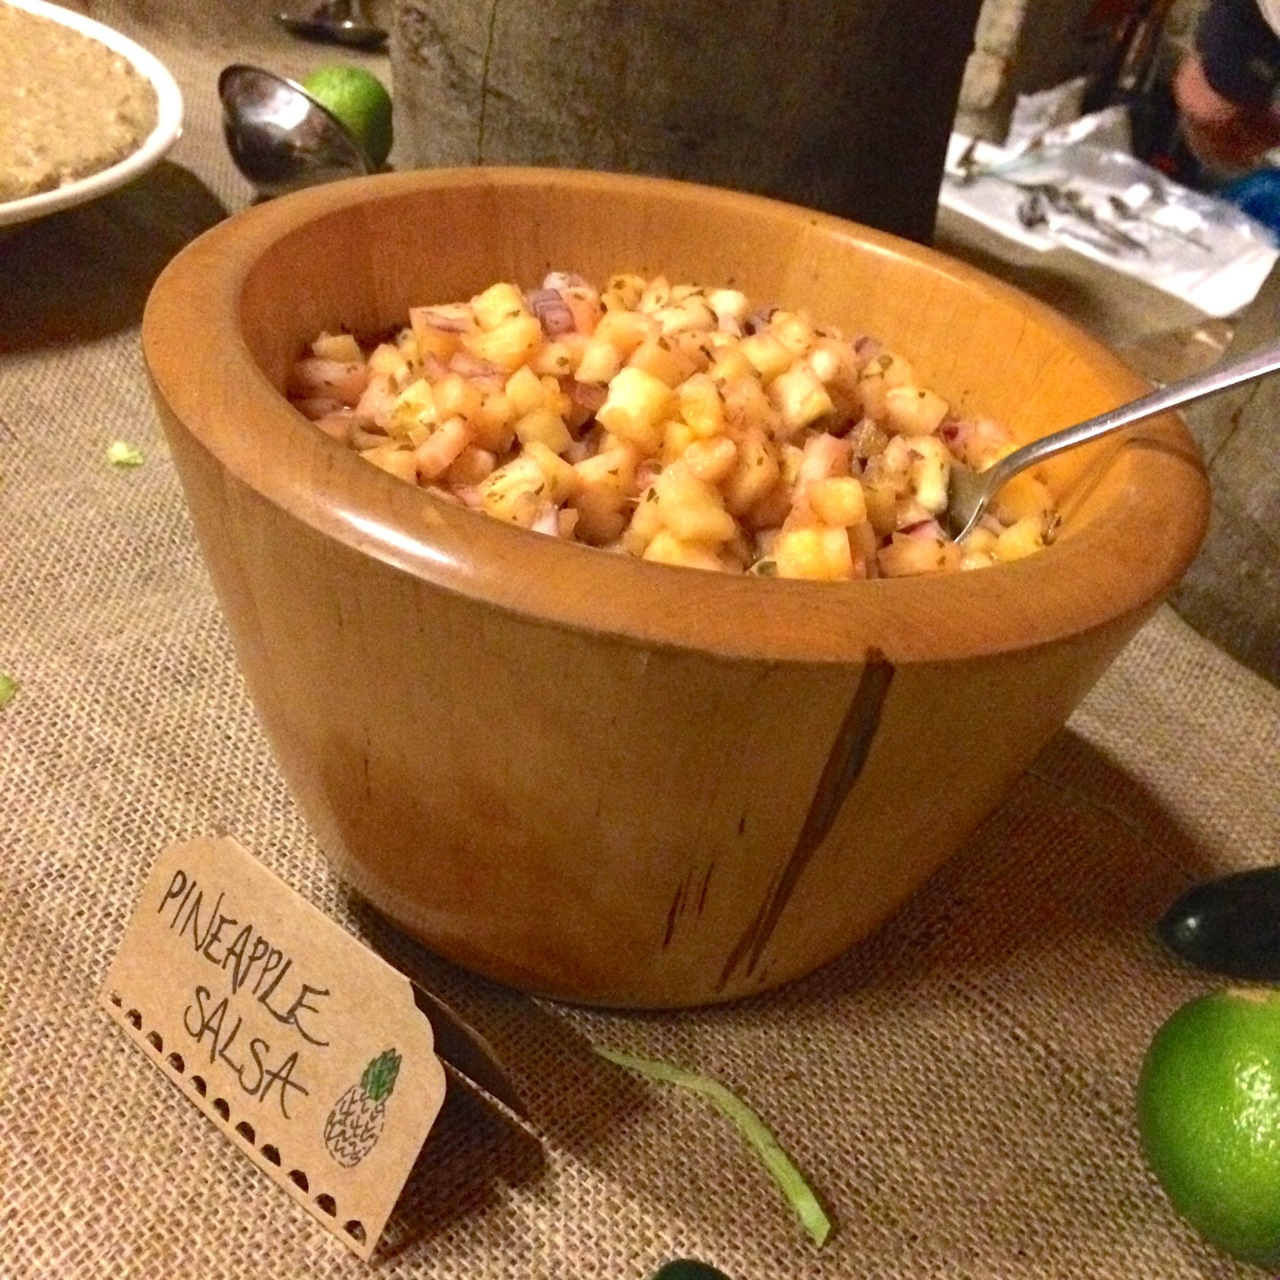 https://i2.wp.com/fatgayvegan.com/wp-content/uploads/2016/01/pineapple-salsa.jpg?fit=1280%2C1280